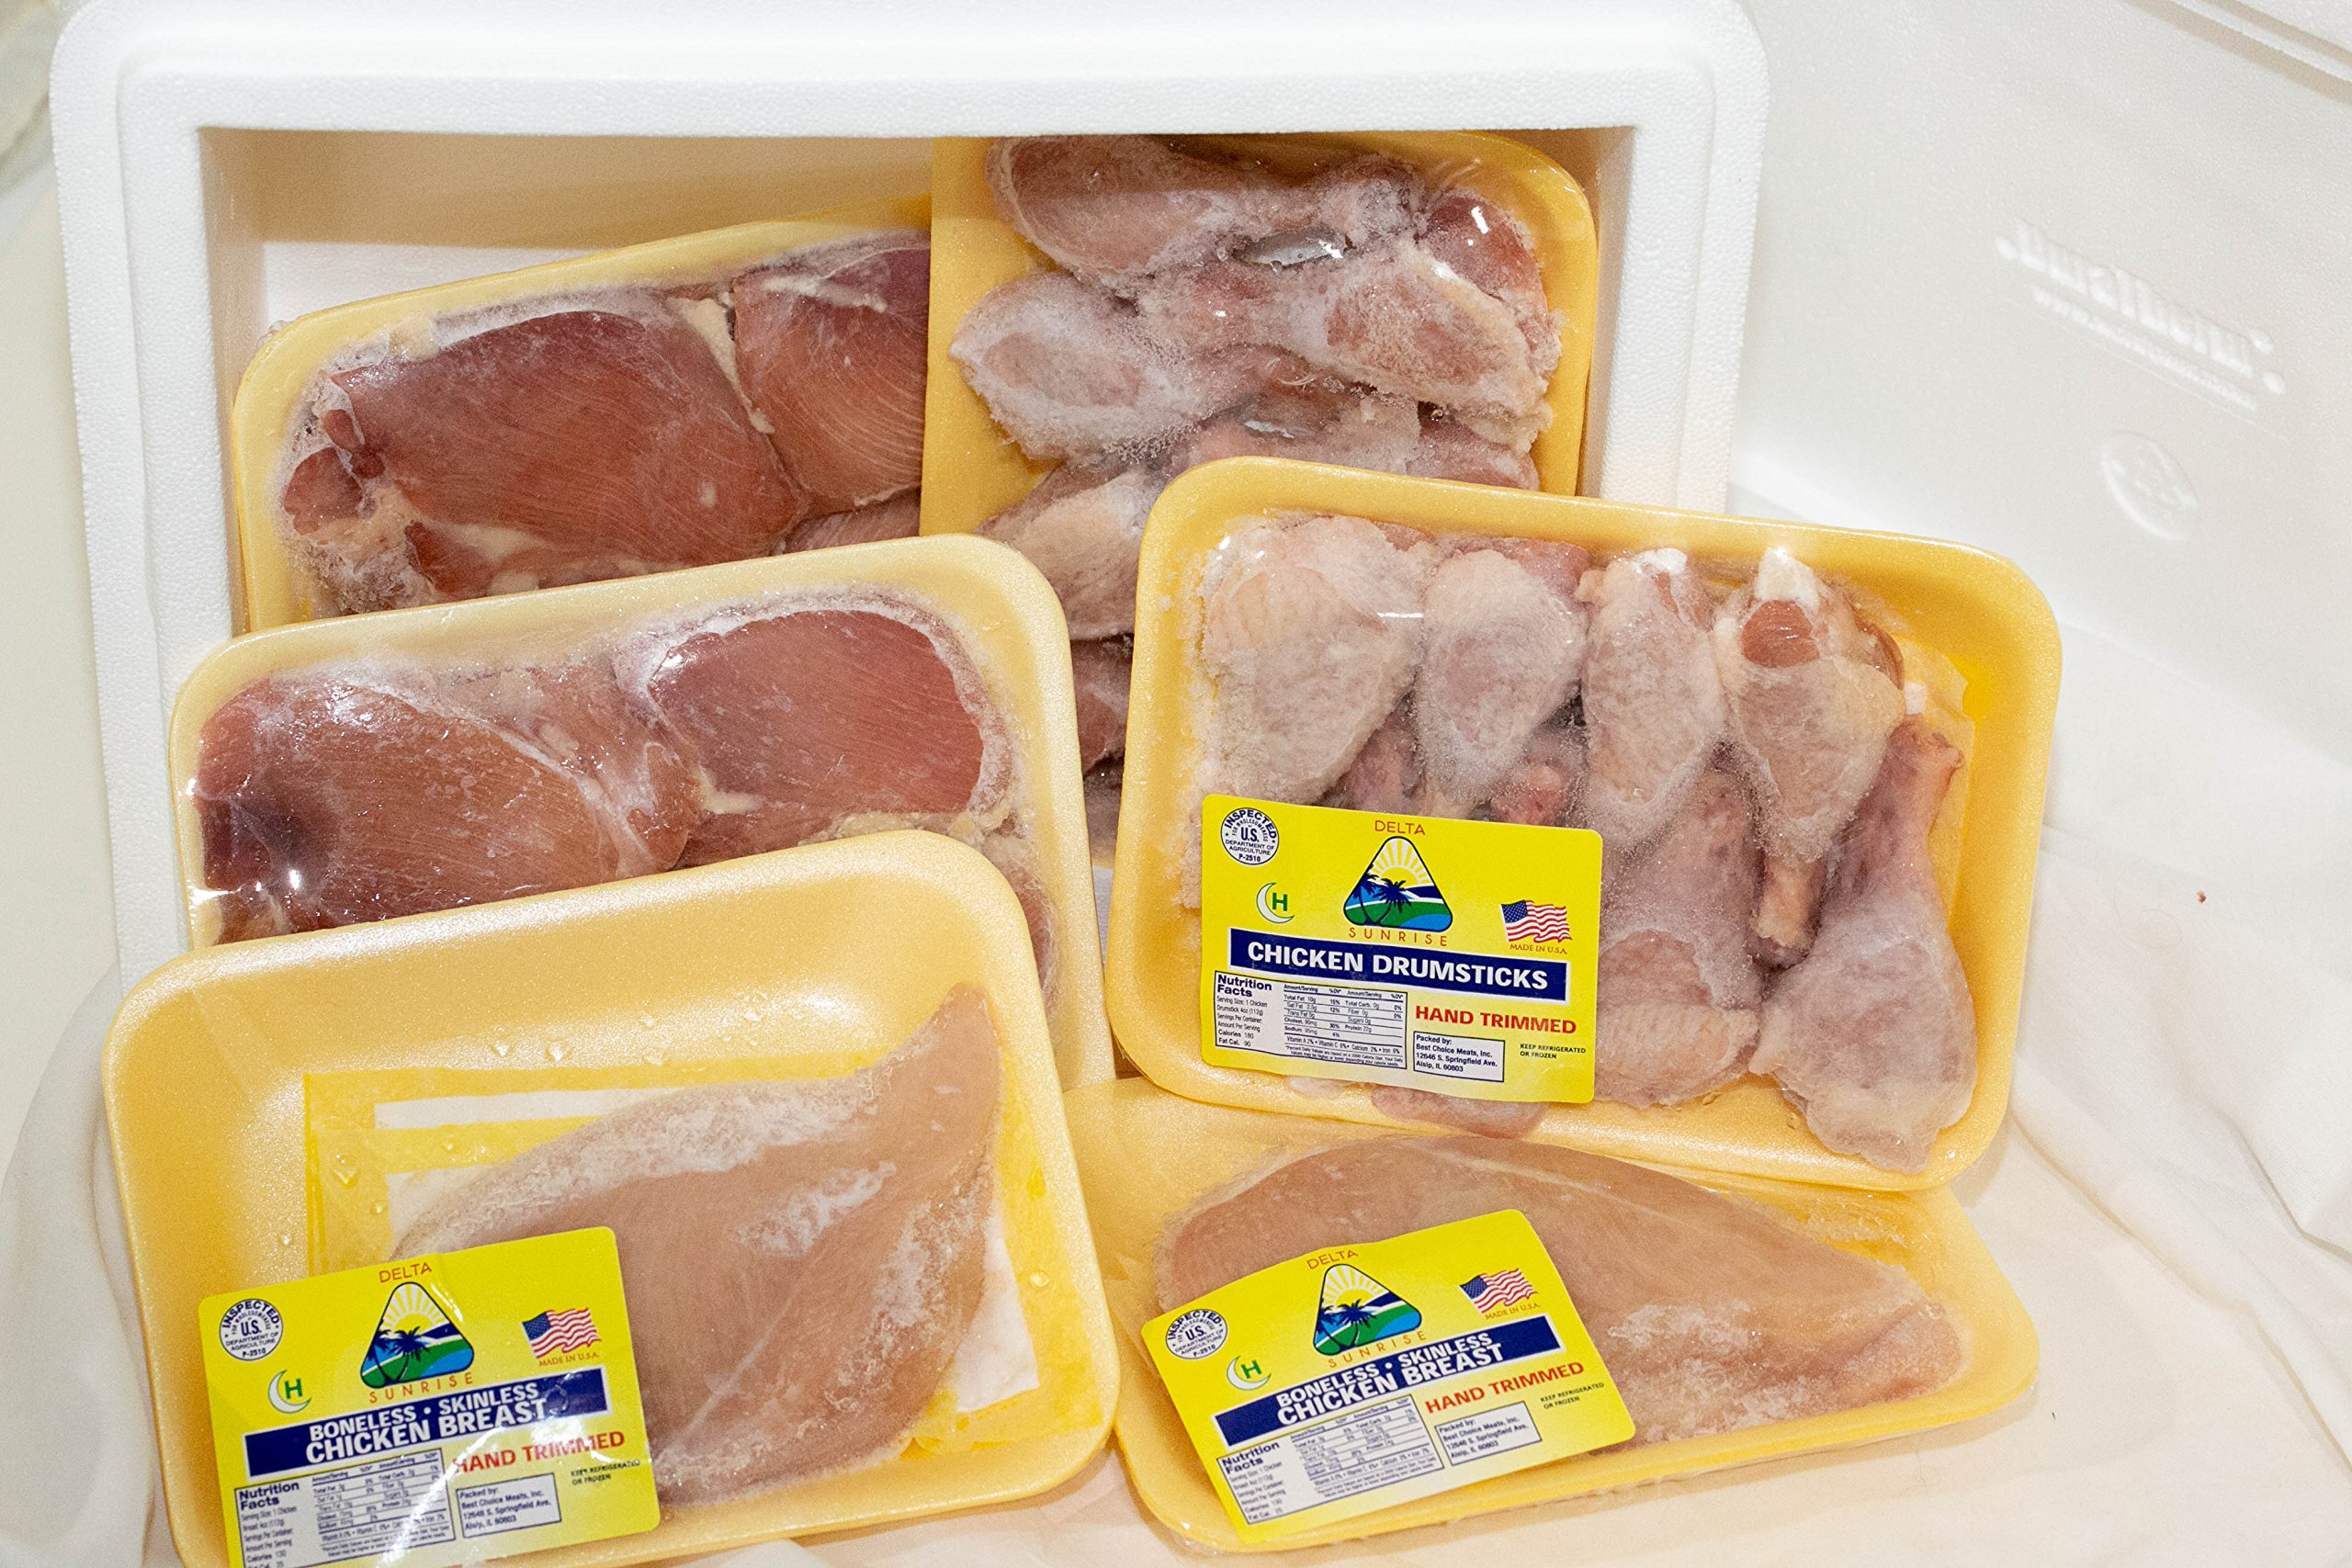 Midamar Halal Chicken Package - Breast, Drumsticks and Thigh